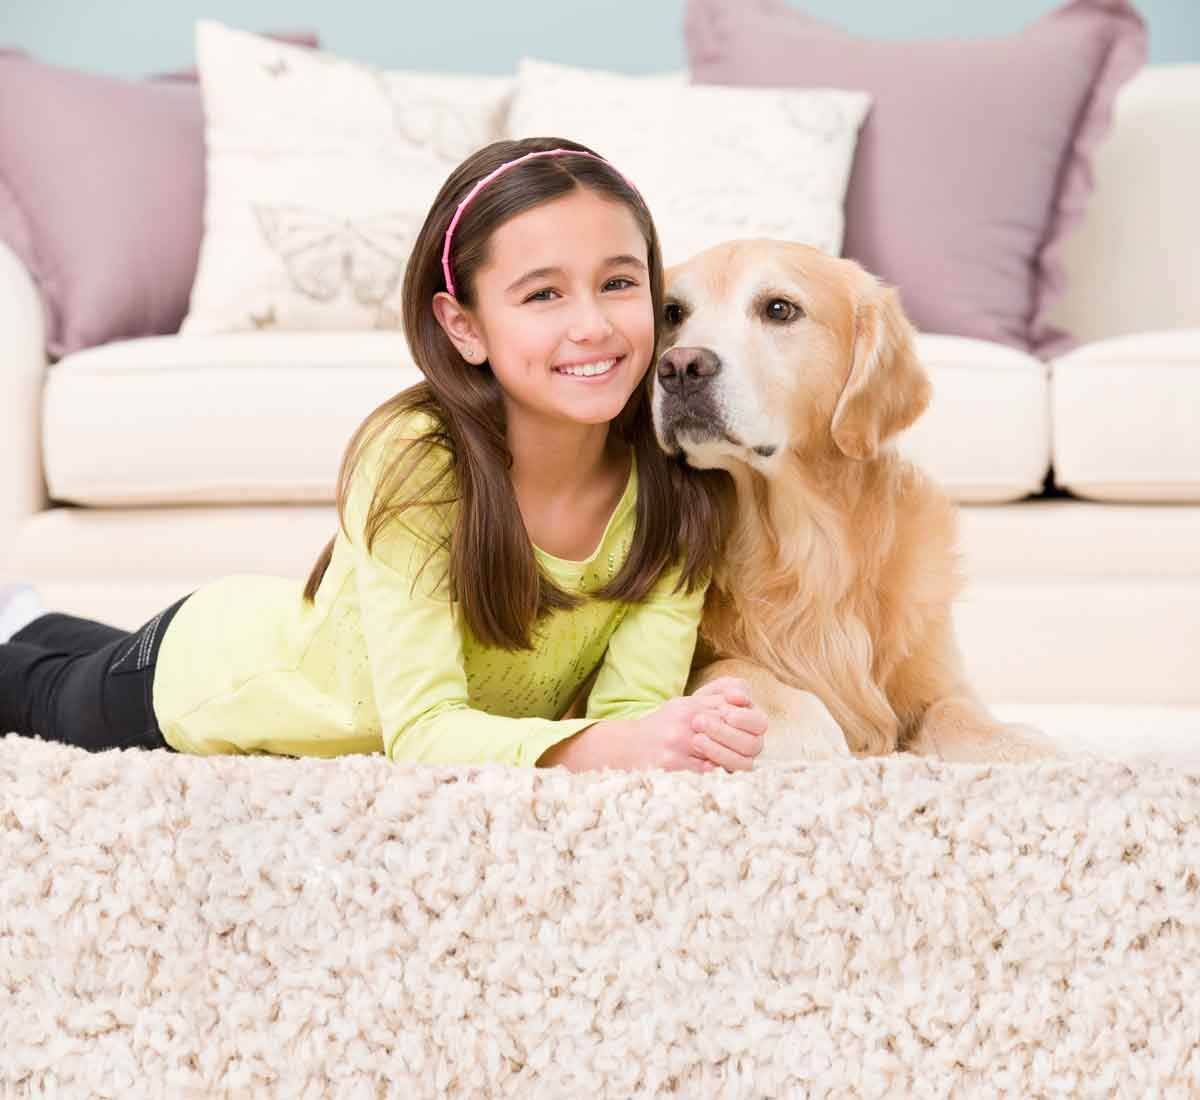 Girl and puppy laying on carpet in orange county home